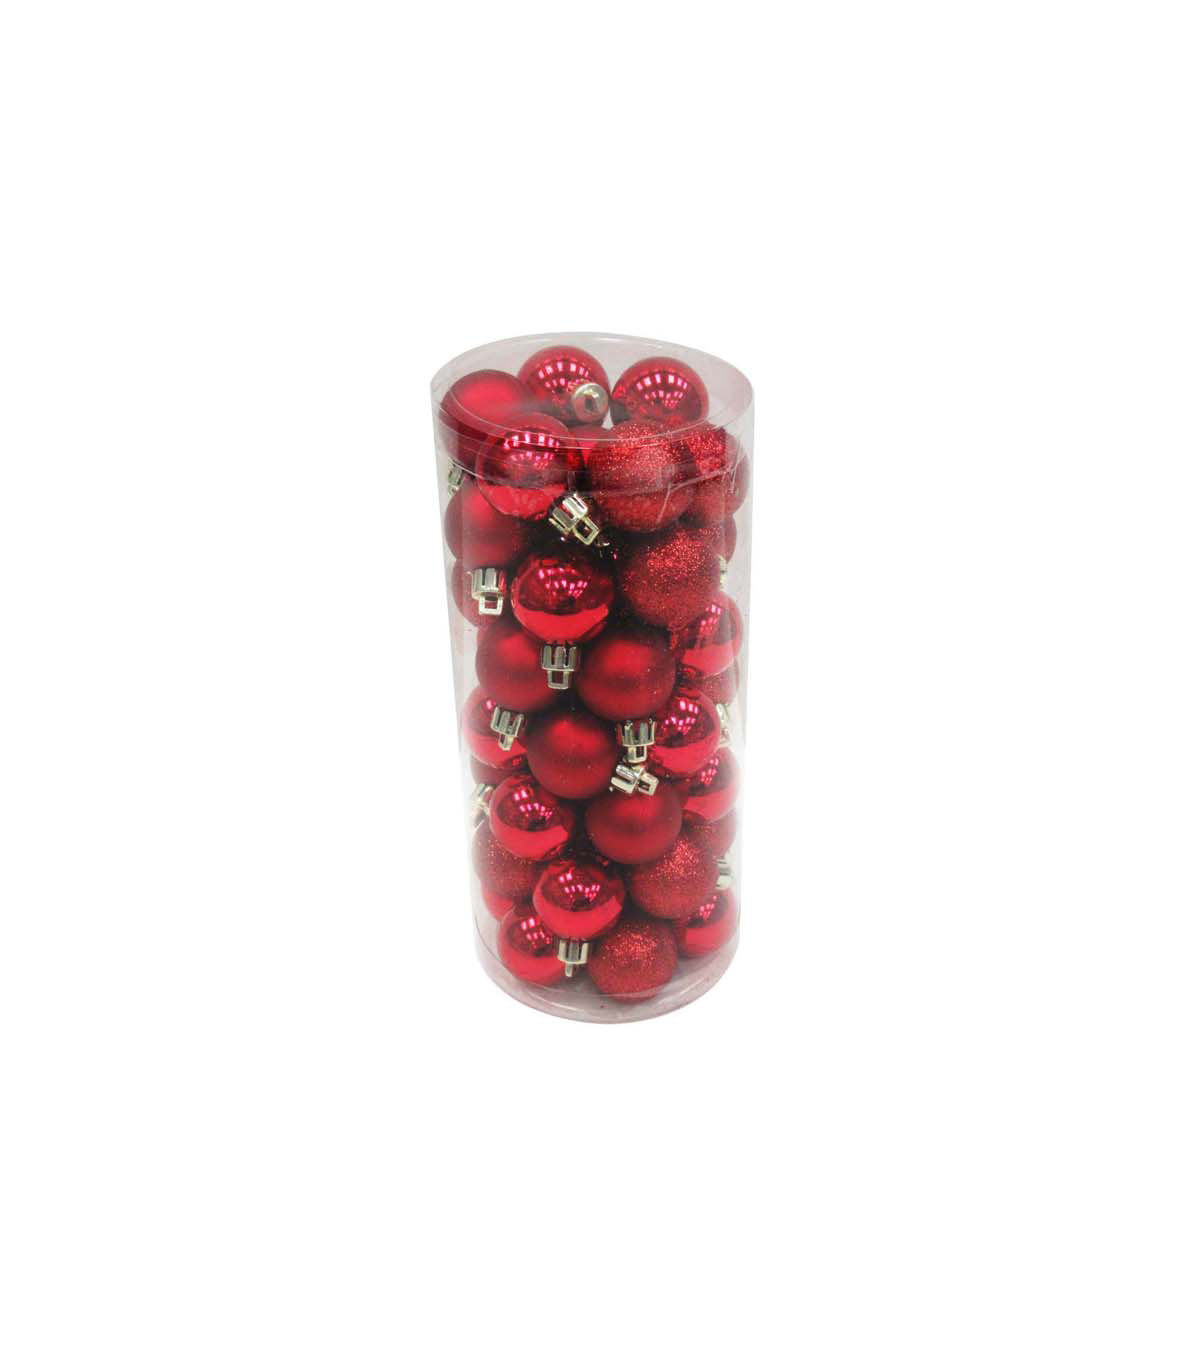 Handmade Holiday Christmas 48 pk 30 mm Boxed Ornaments-Red